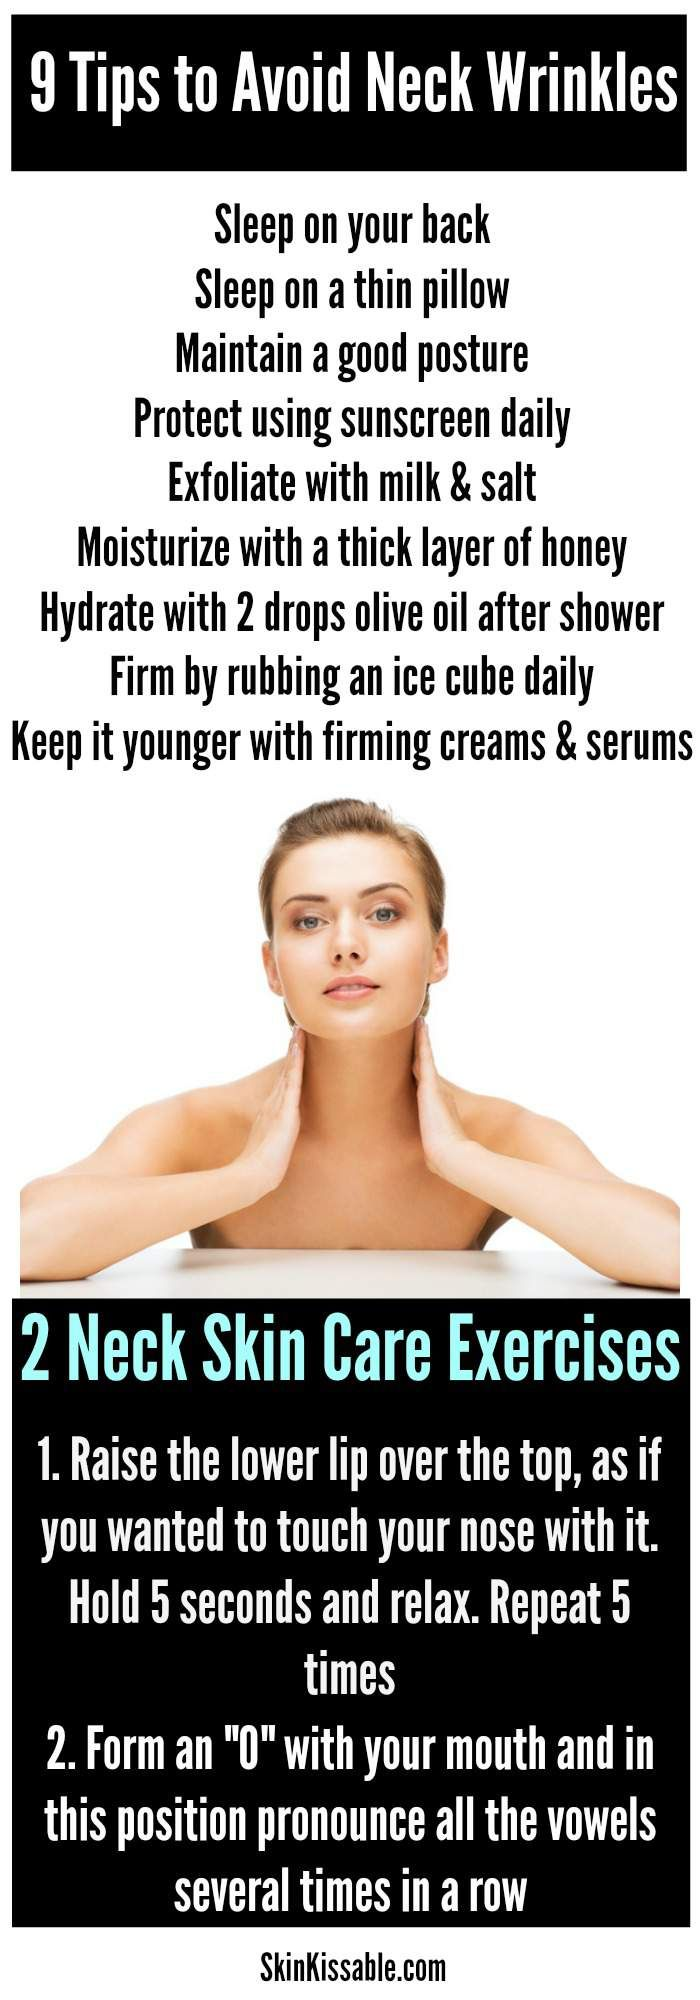 1817 Best Images About Skin Care On Pinterest  Skin Tightening, Oily Skin  And Skin Care